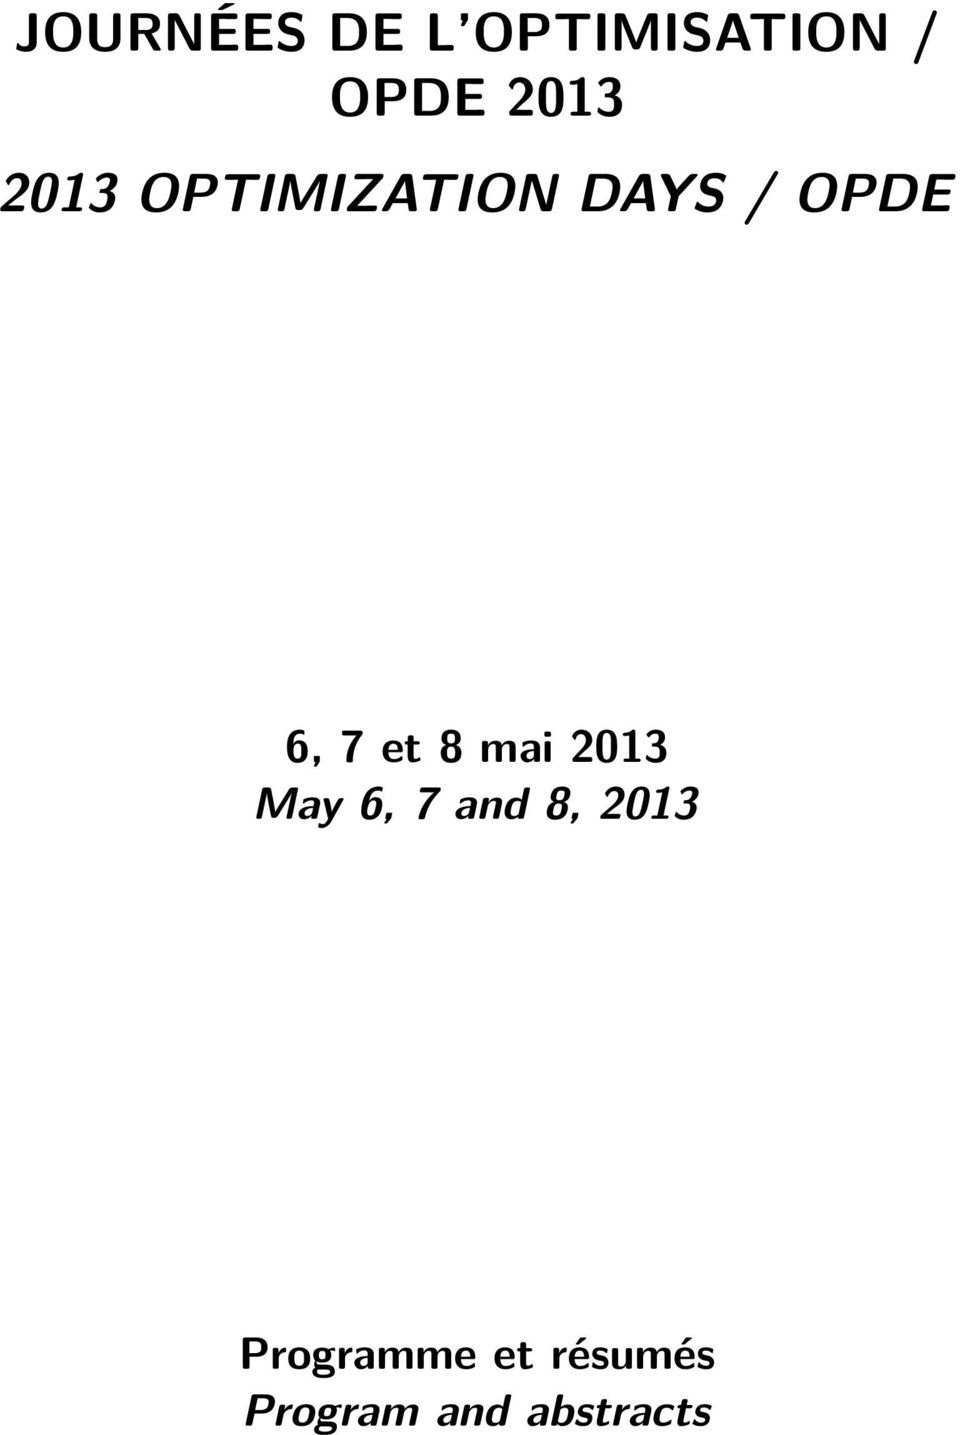 7 et 8 mai 2013 May 6, 7 and 8, 2013